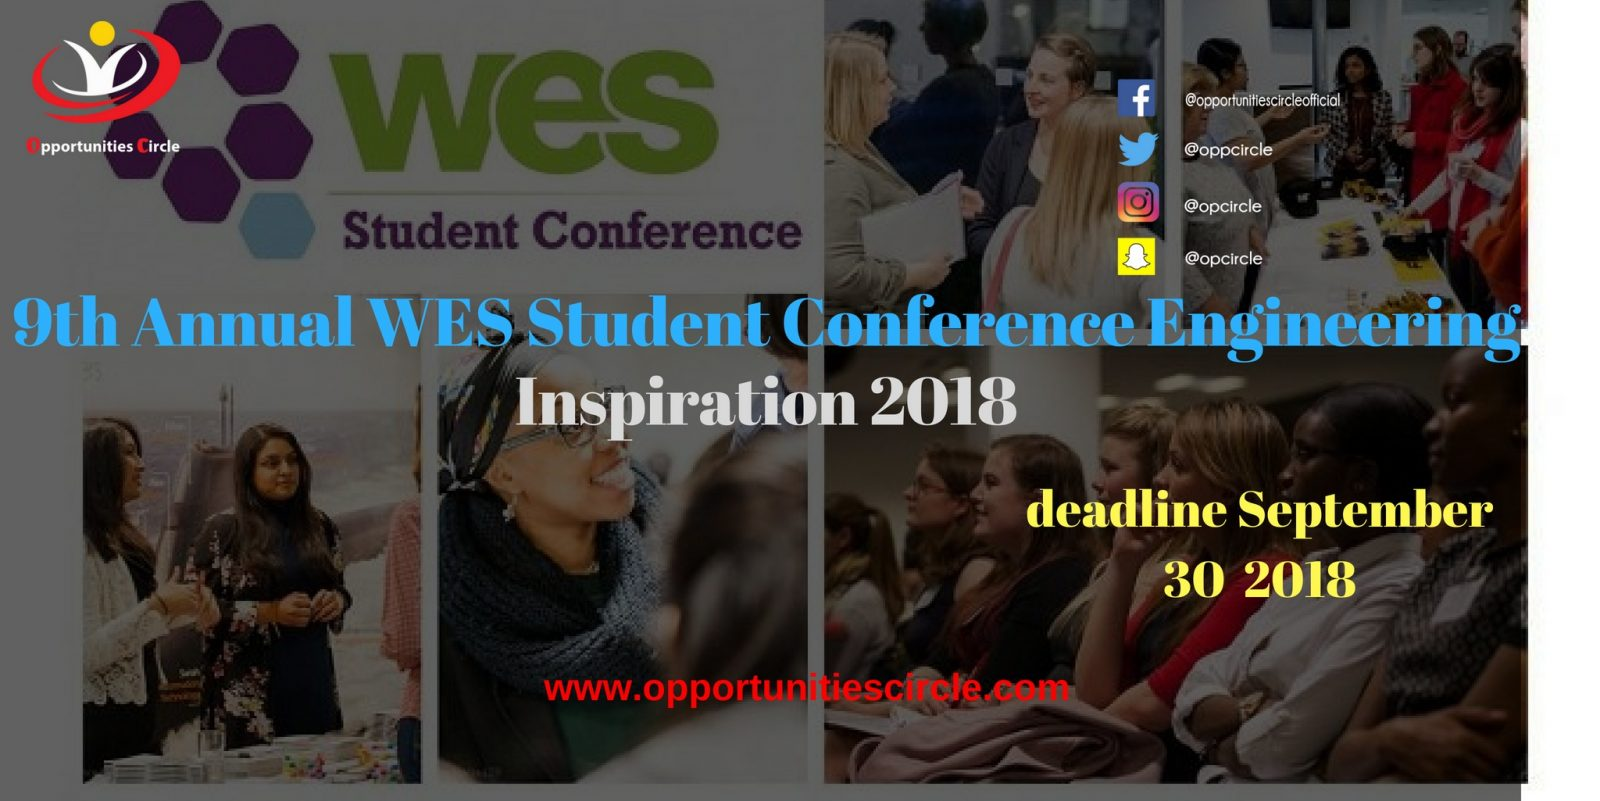 9th Annual WES Student Conference Engineering Inspiration 2018 - 9th Annual WES Student Conference Engineering Inspiration 2018